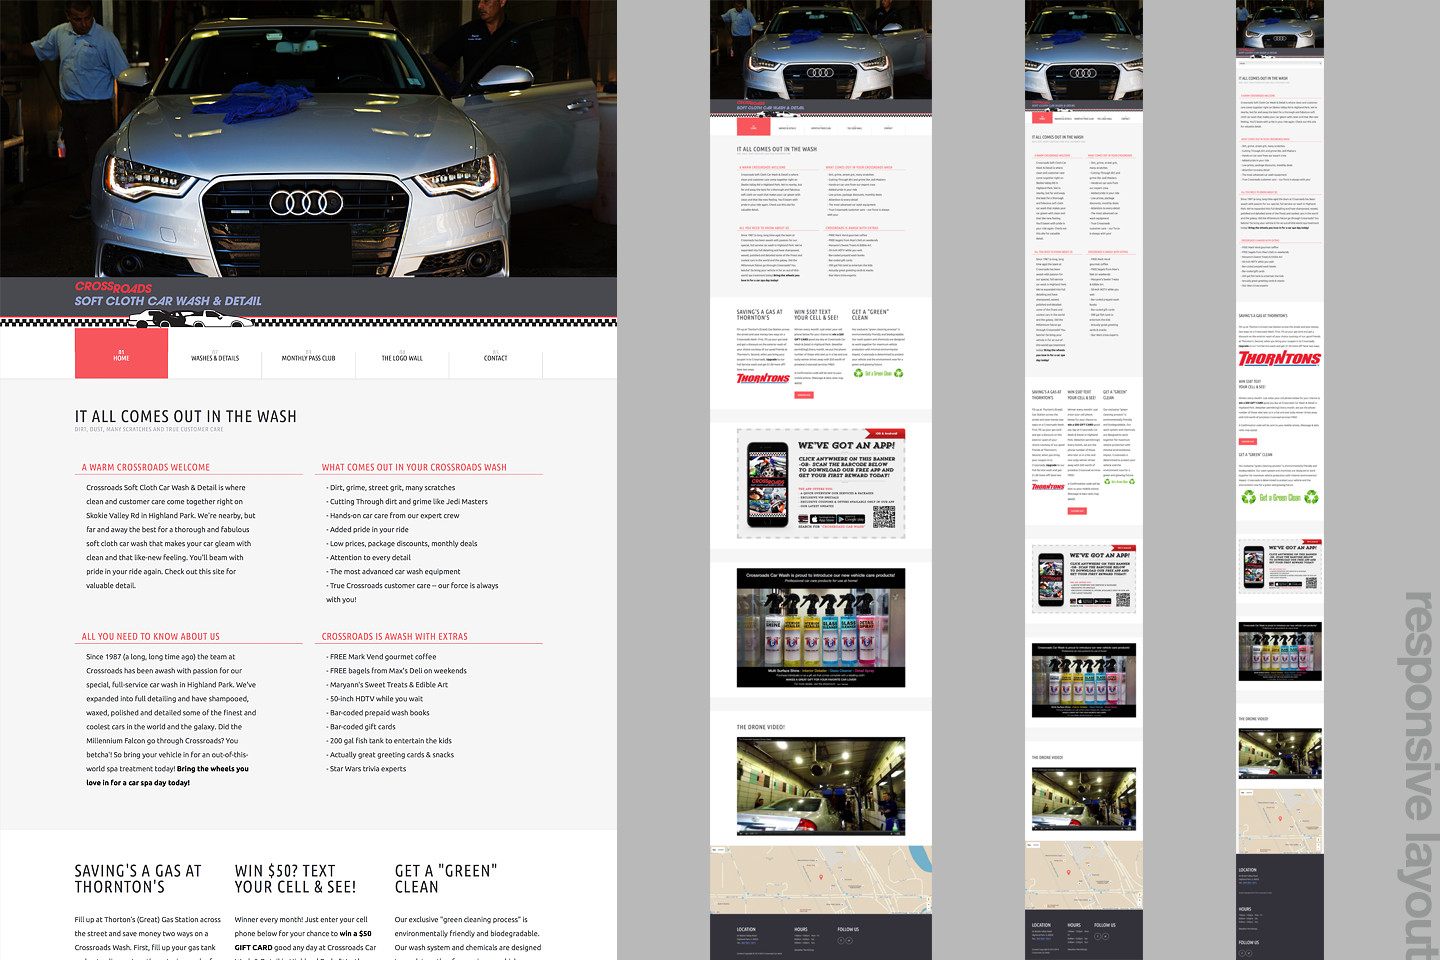 crossroads car wash responsive web design by 4d inc